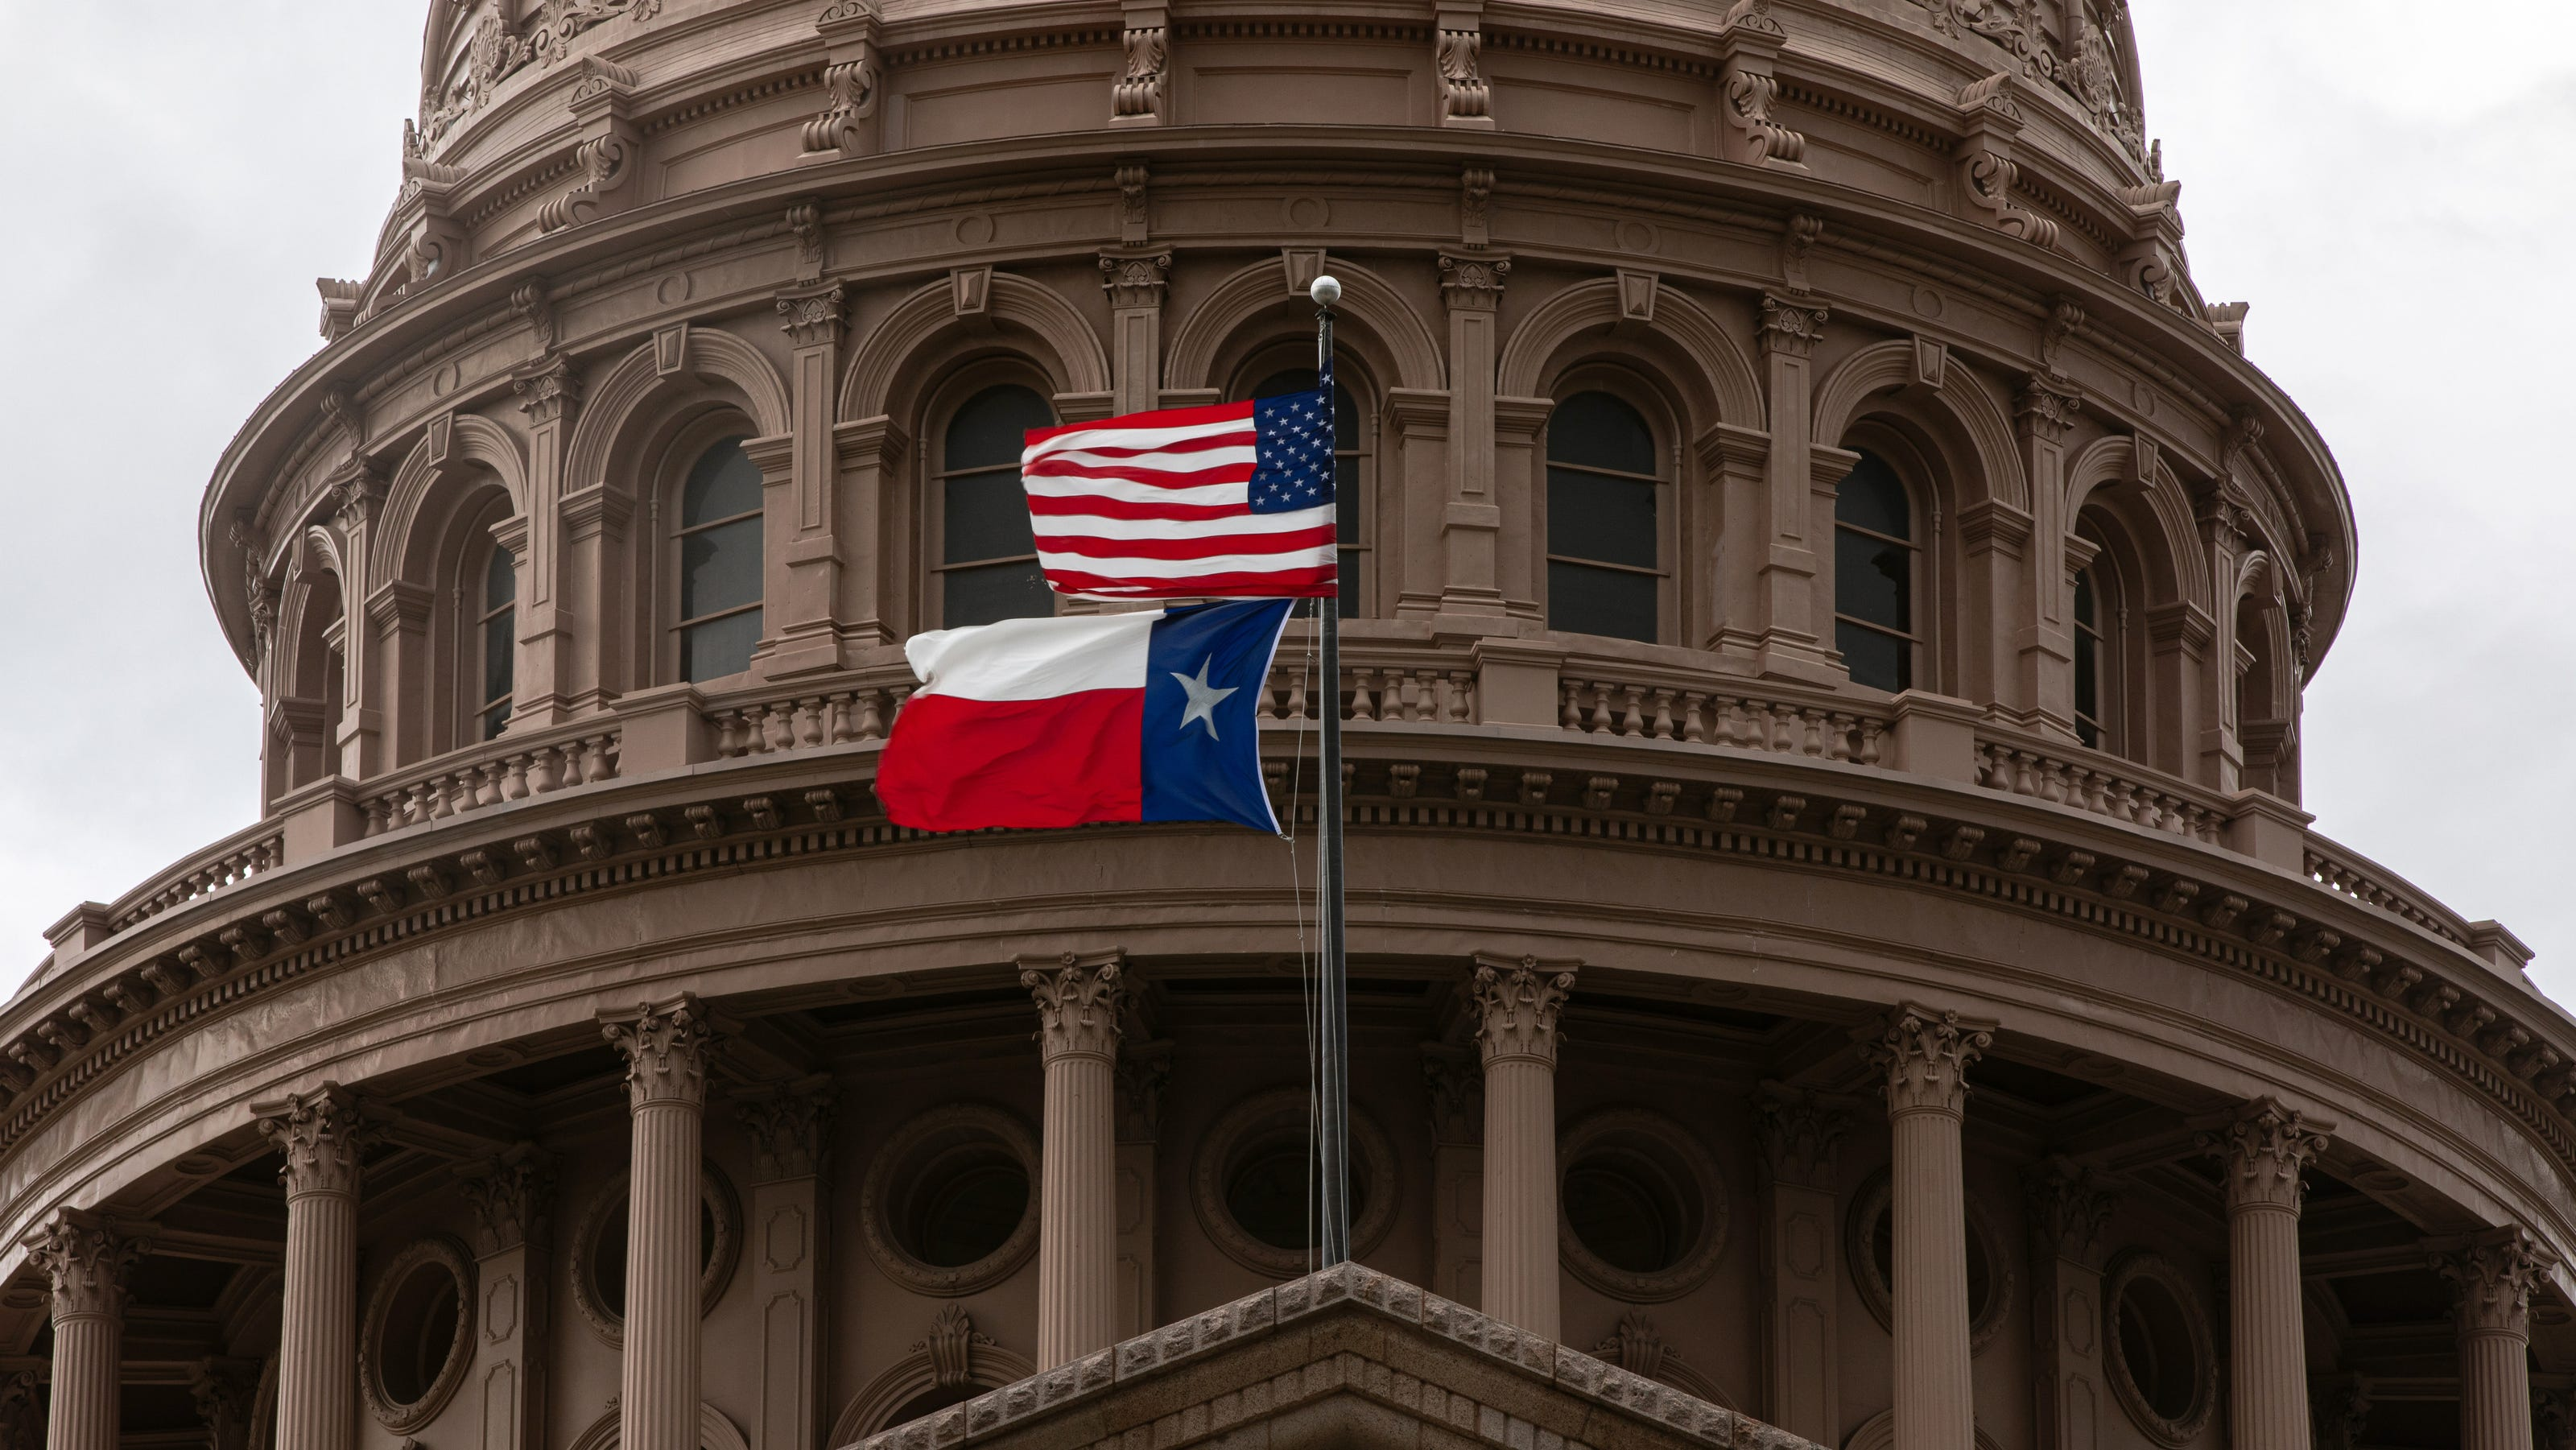 Texas law would stop Facebook from censoring conservatives, GOP says